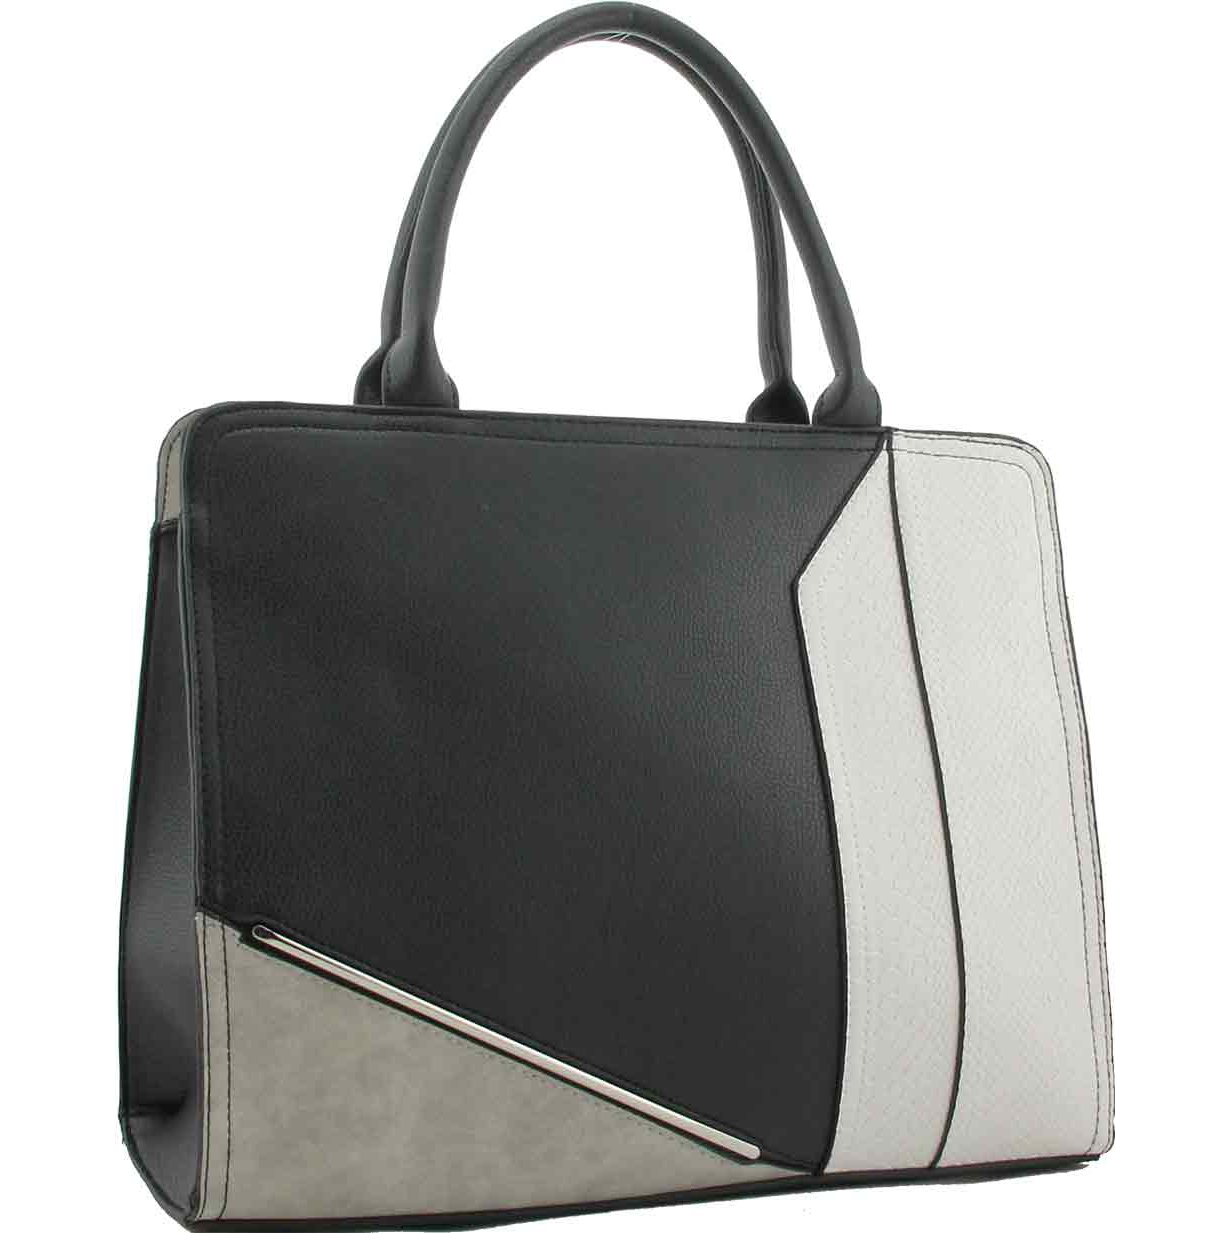 7bc6f2fe8c08 H1732 - Jodie Grey Colour Block Tote Bag ~ BAGZONE - Suppliers of ...